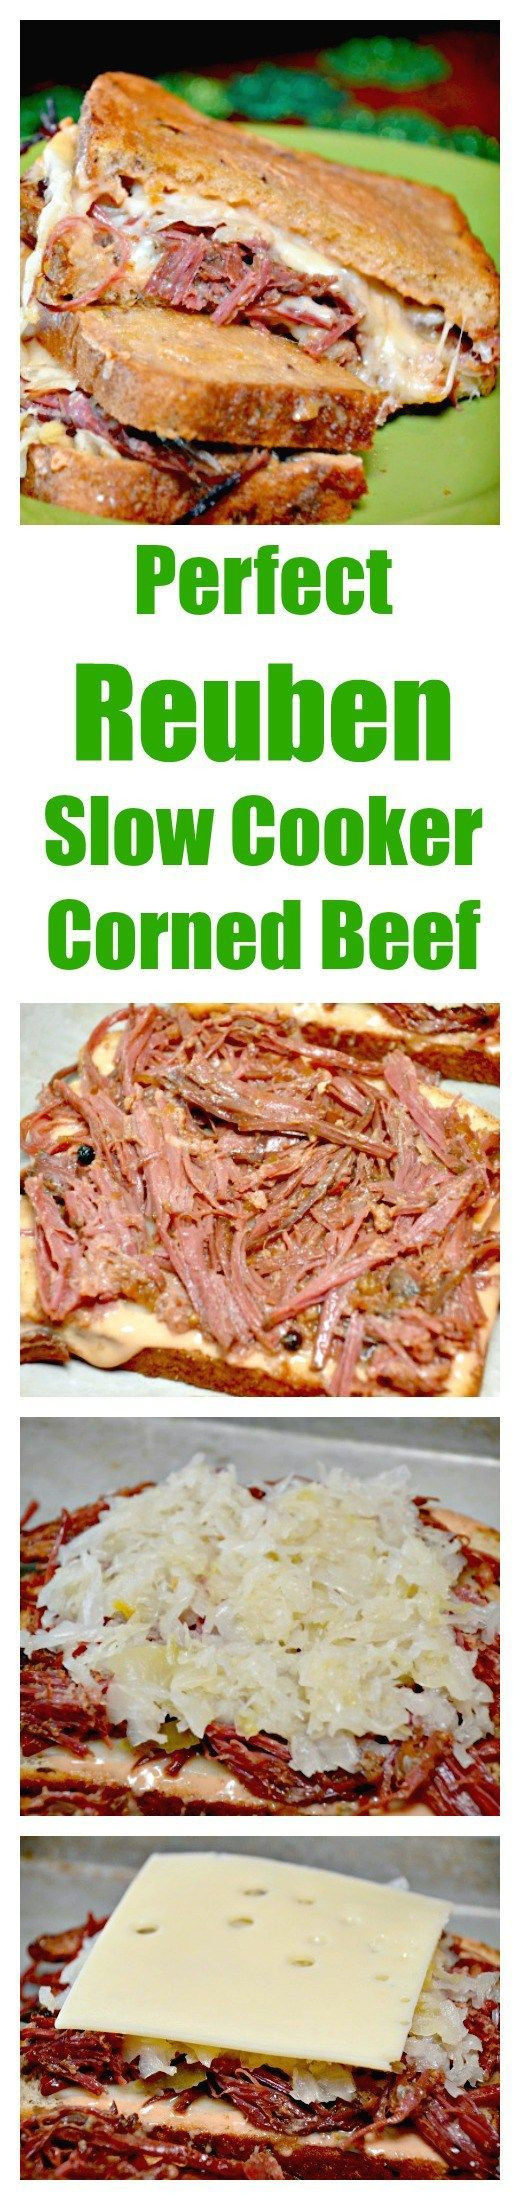 Corned Beef Brisket Slow Cooker For Sandwiches  Best 25 Crock pot brisket ideas on Pinterest